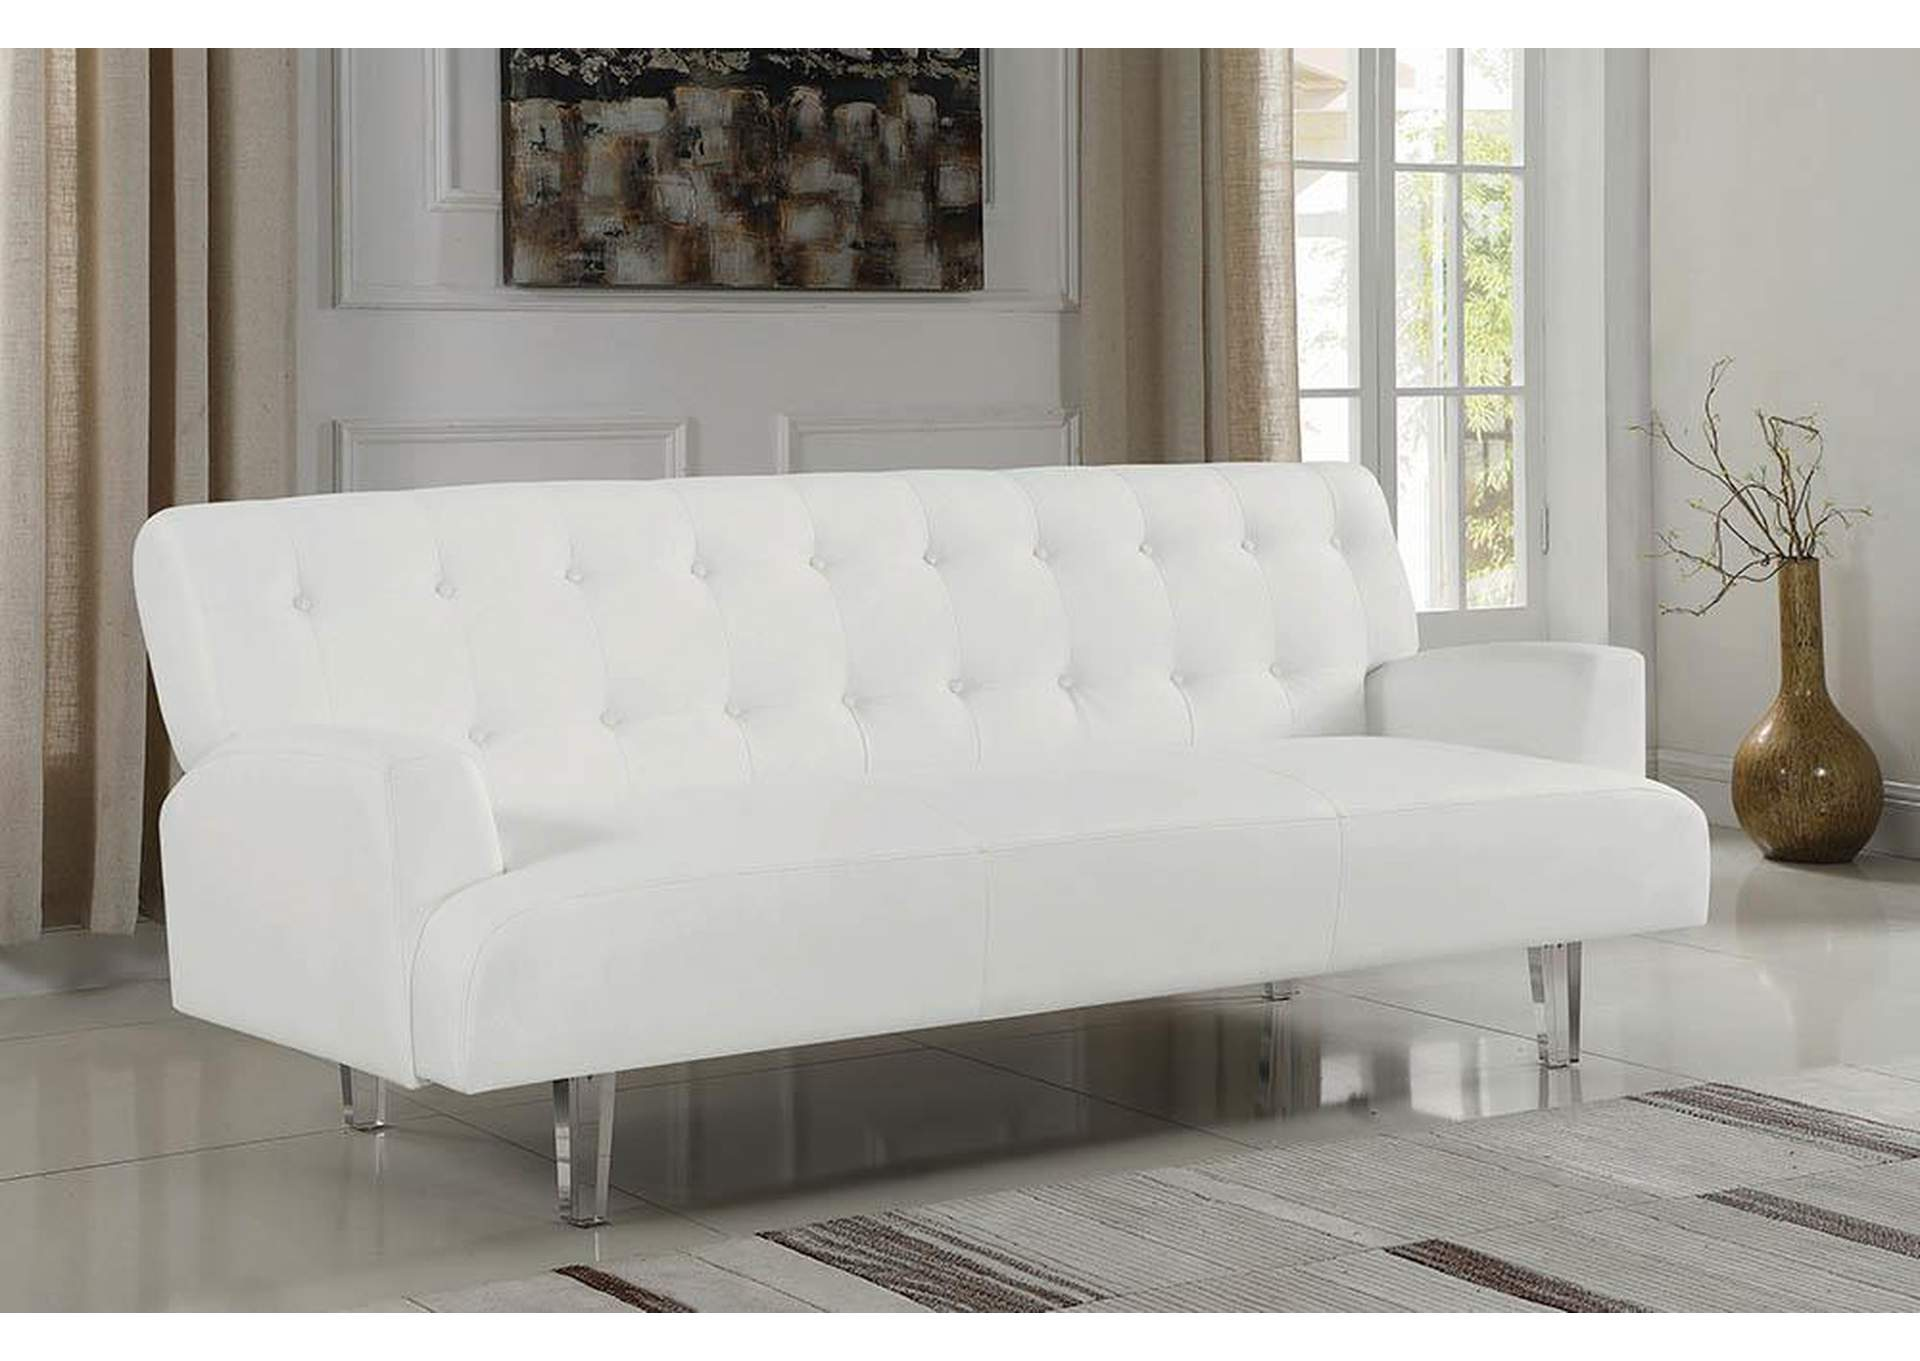 Oak Furniture Liquidators White Faux Leather Sofa Bed